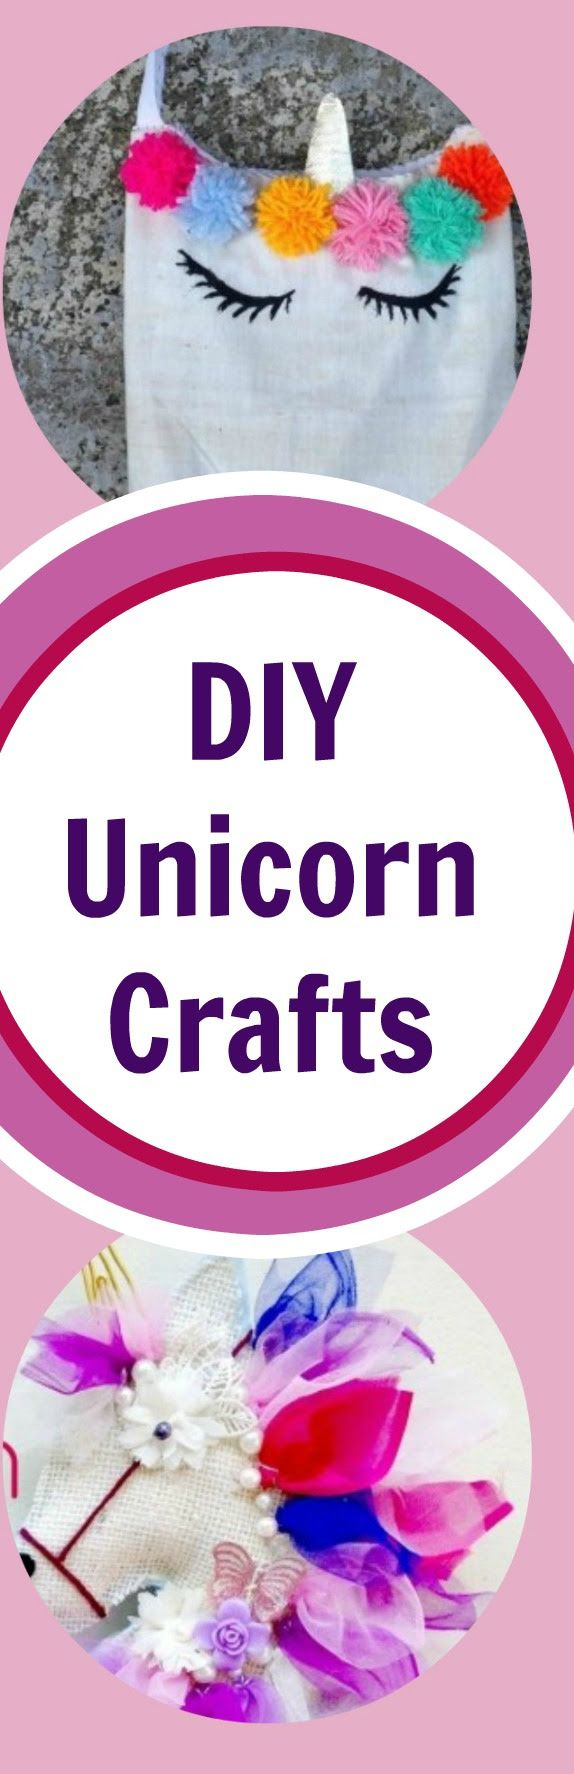 Eight DIY Unicorn Craft Tutorials These unicorn craft projects are perfect for children and adults. Lots of cute ideas for the unicorn lover in your family. Find the perfect unicorn craft for you or your child today! #unicorns #unicorncrafts #diyunicorns #crafts #diy #kidscrafts